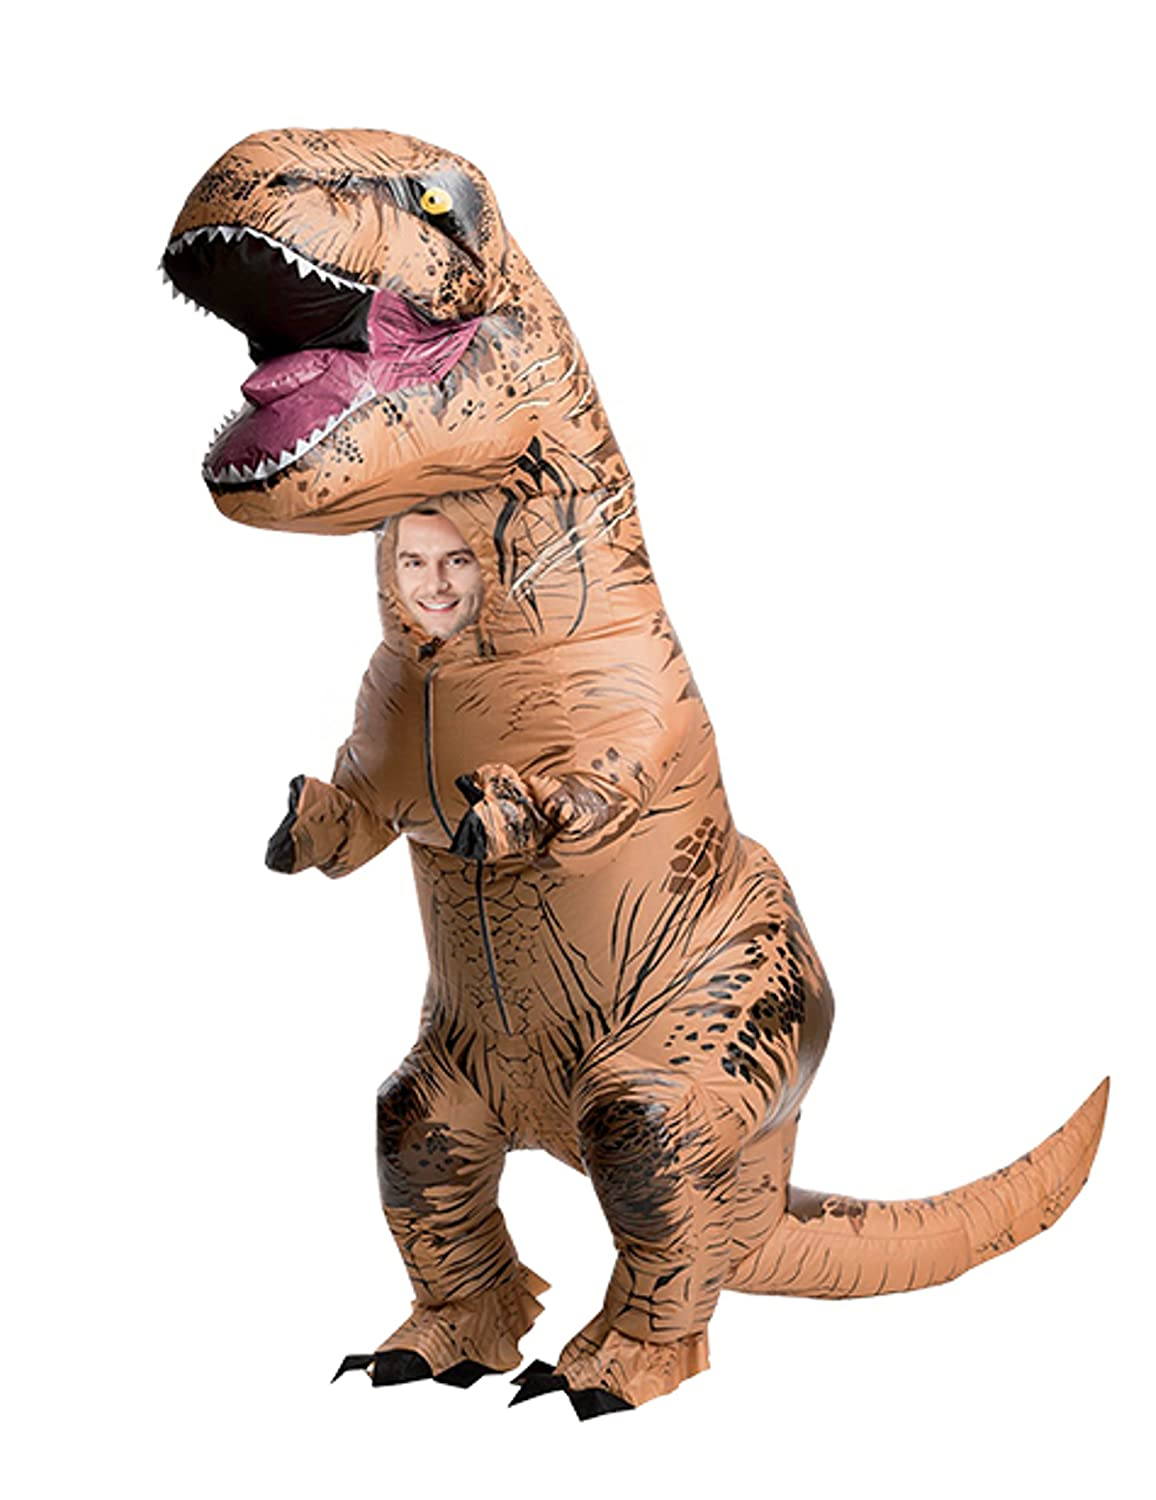 Costume Inflatable Dinosaur T-Rex New - Premium Quality - Adult Größe Costume - Polyester Comfortable to Wear and Resistant - Includes Inflation System